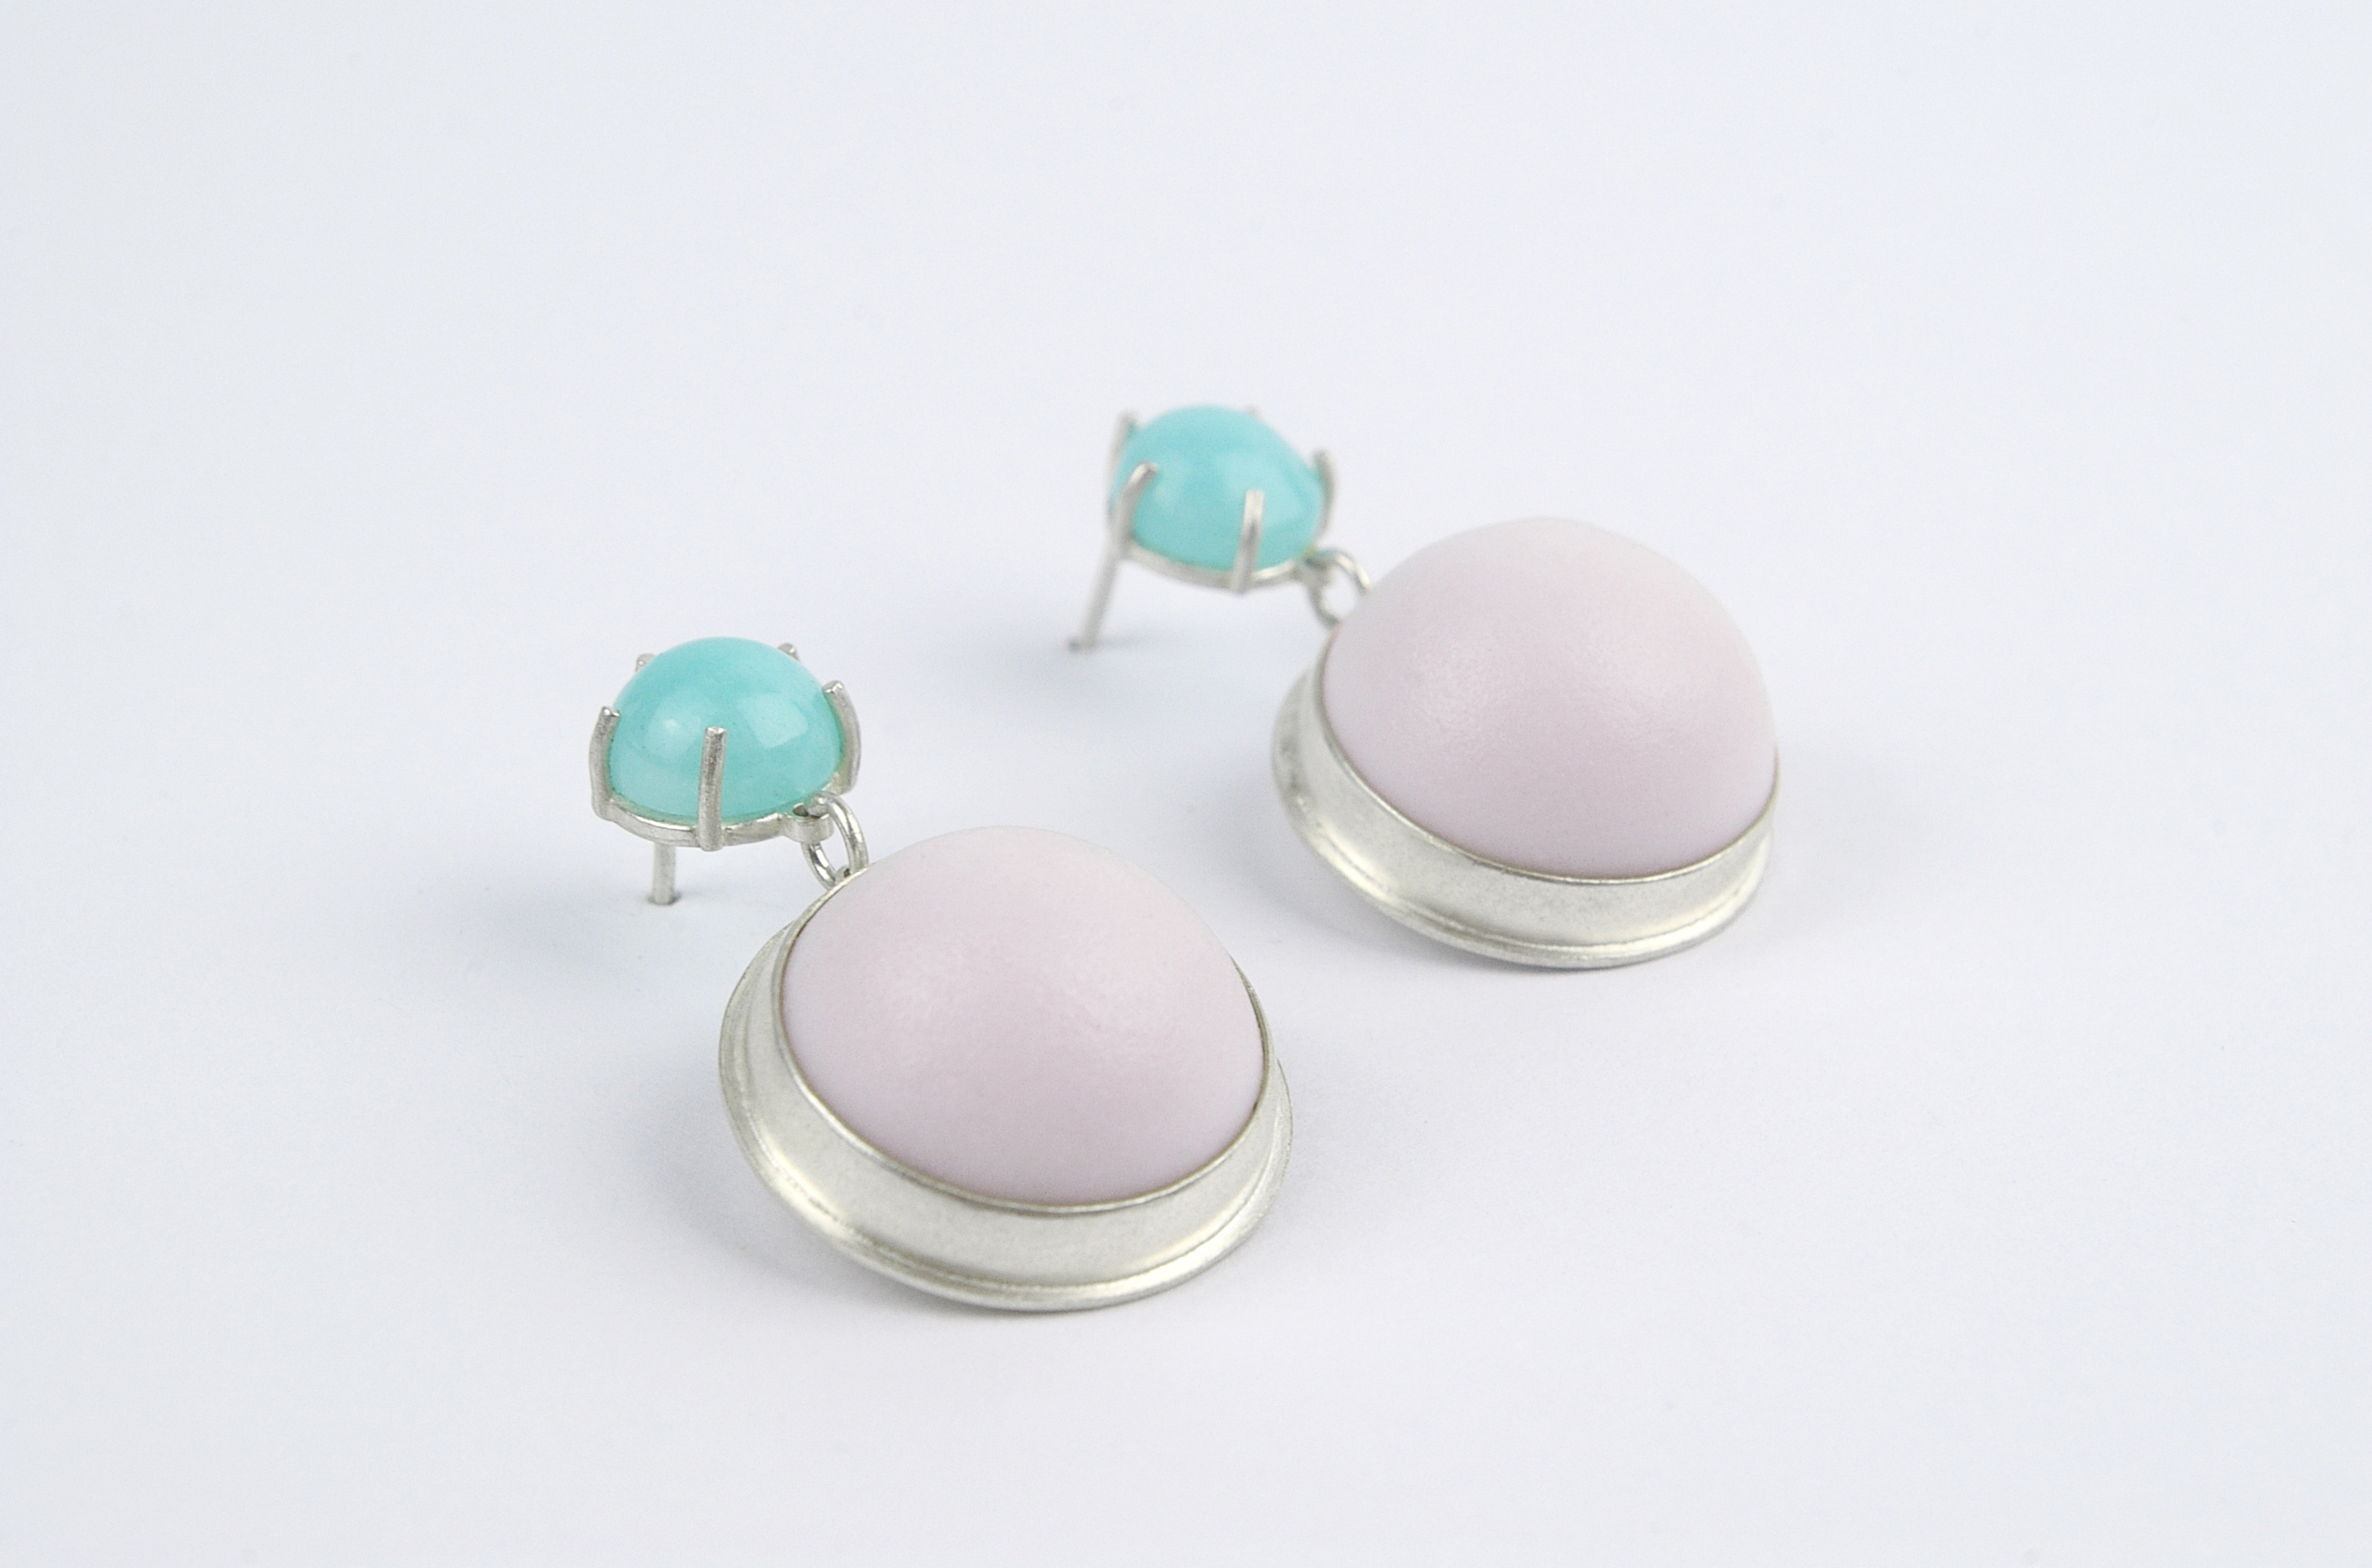 Gumdrop earrings - violet amazonite